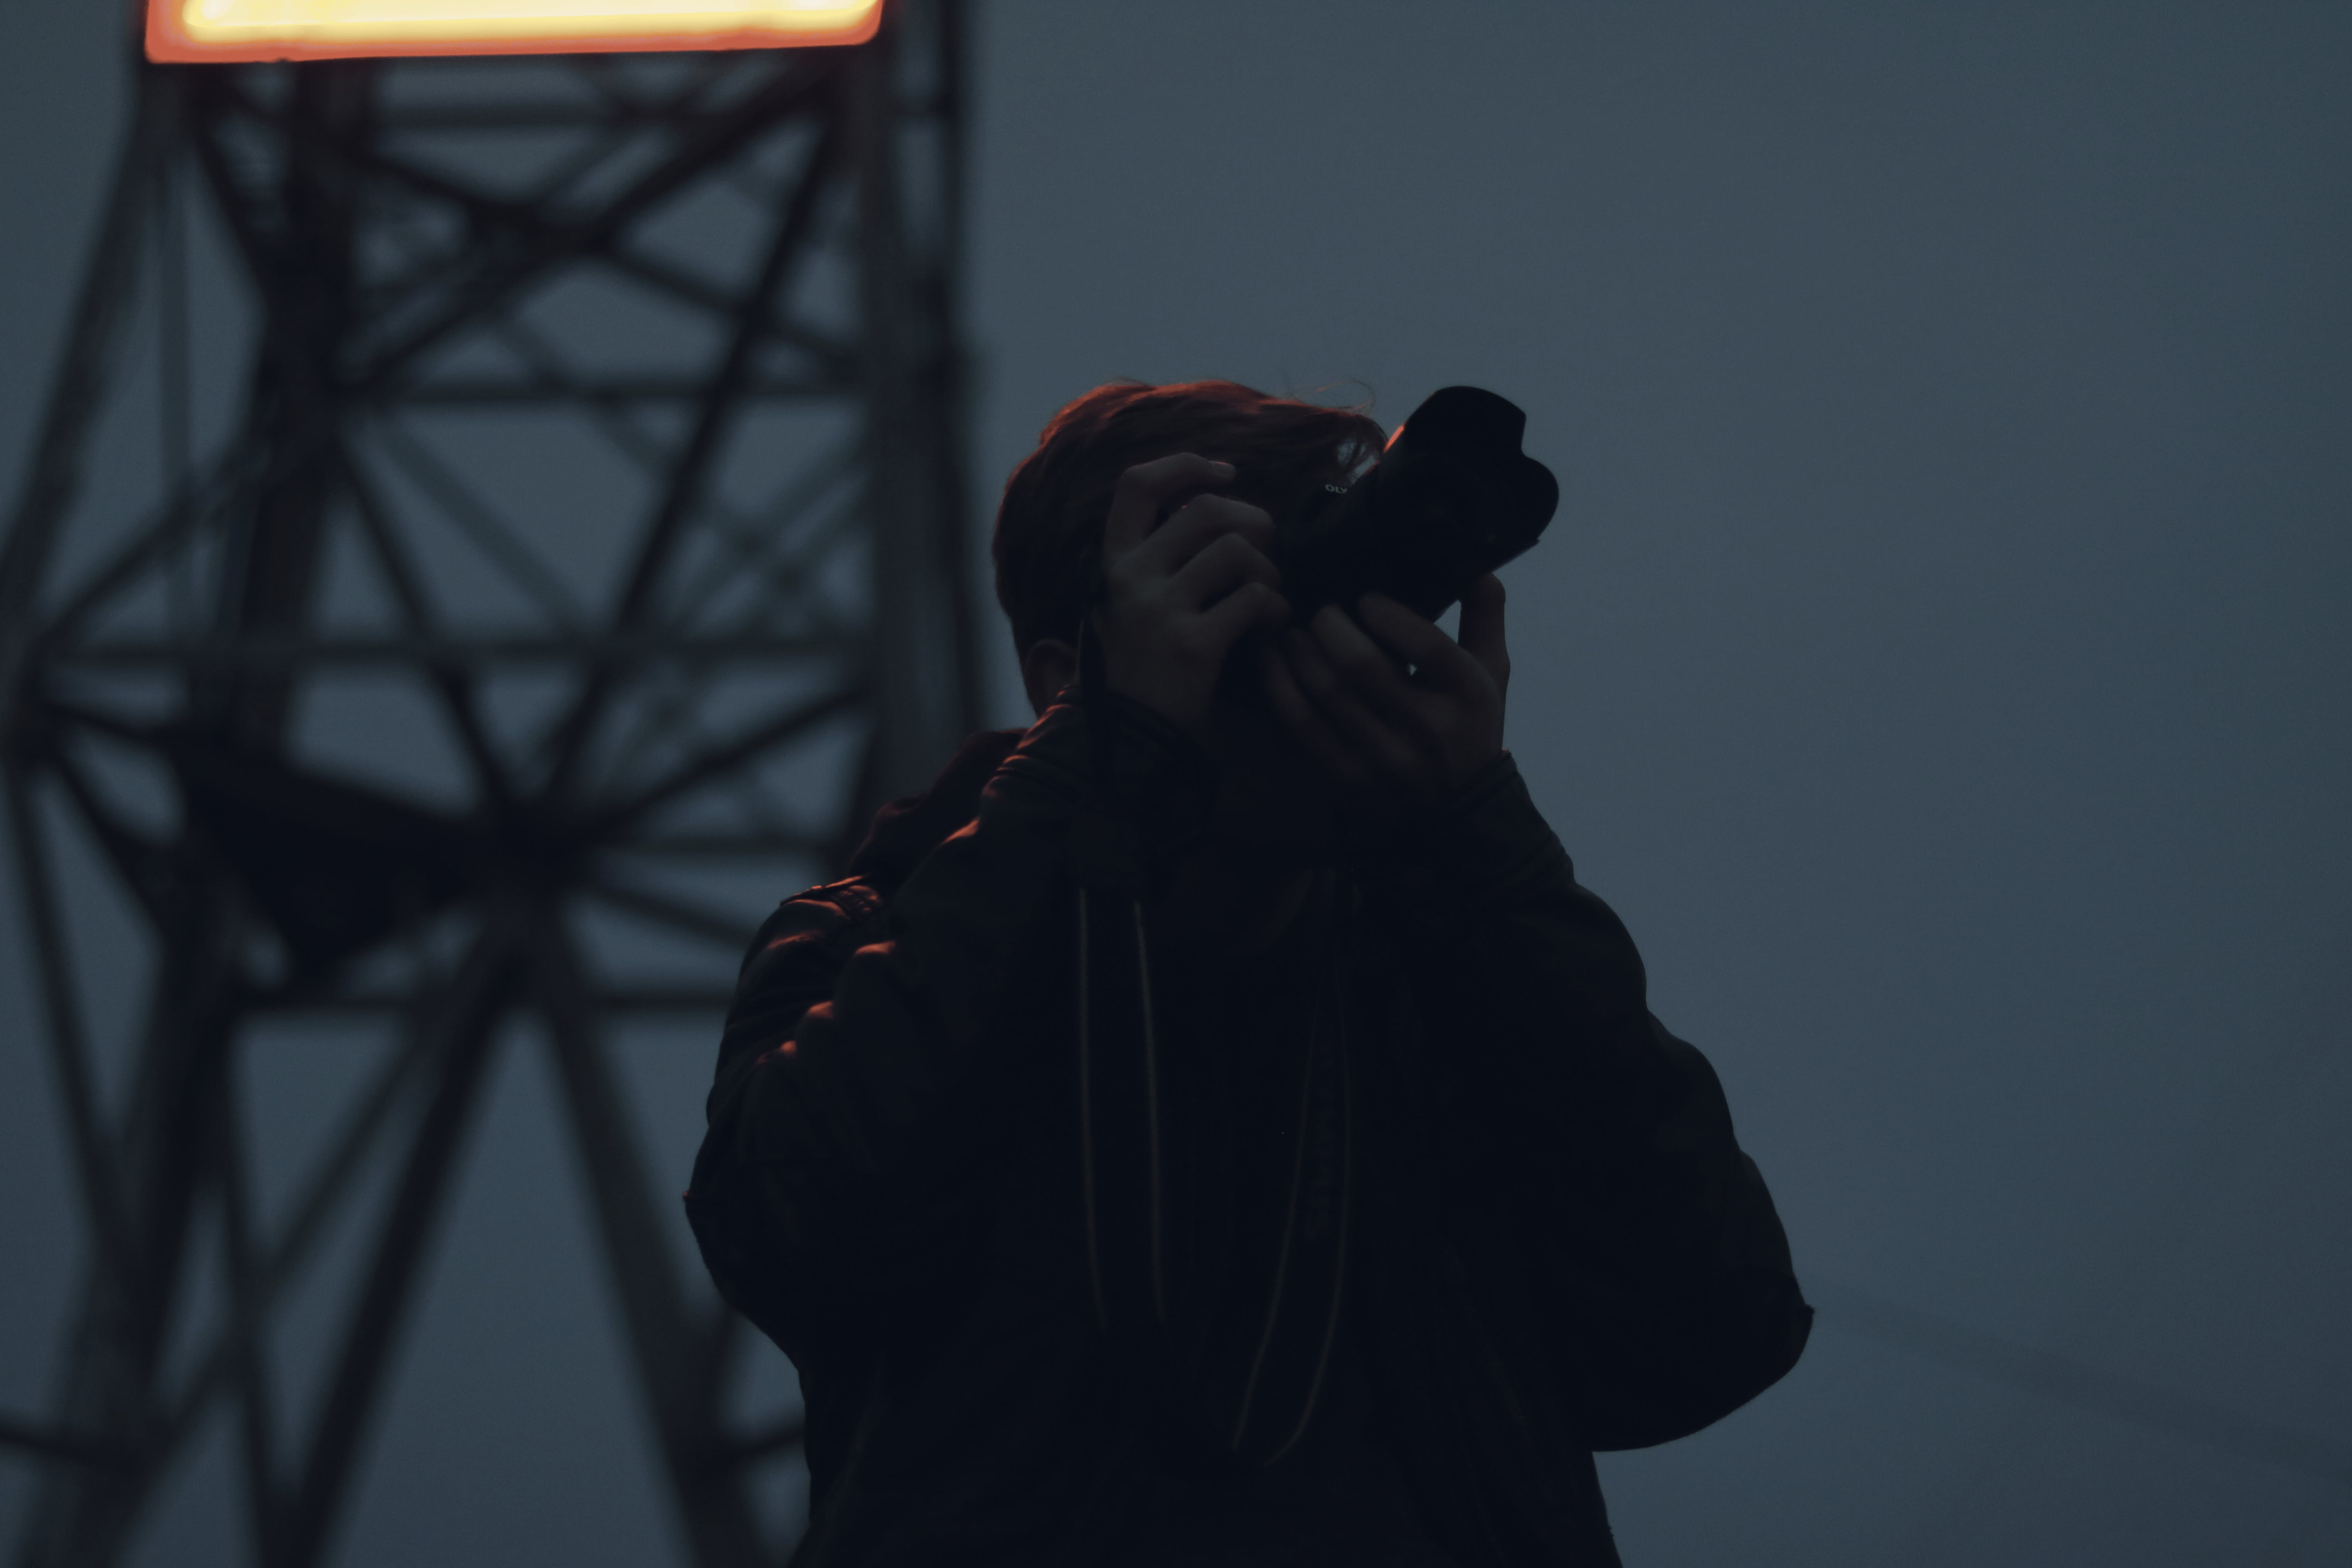 Silhouette Photography of Man Holding Dslr Camera